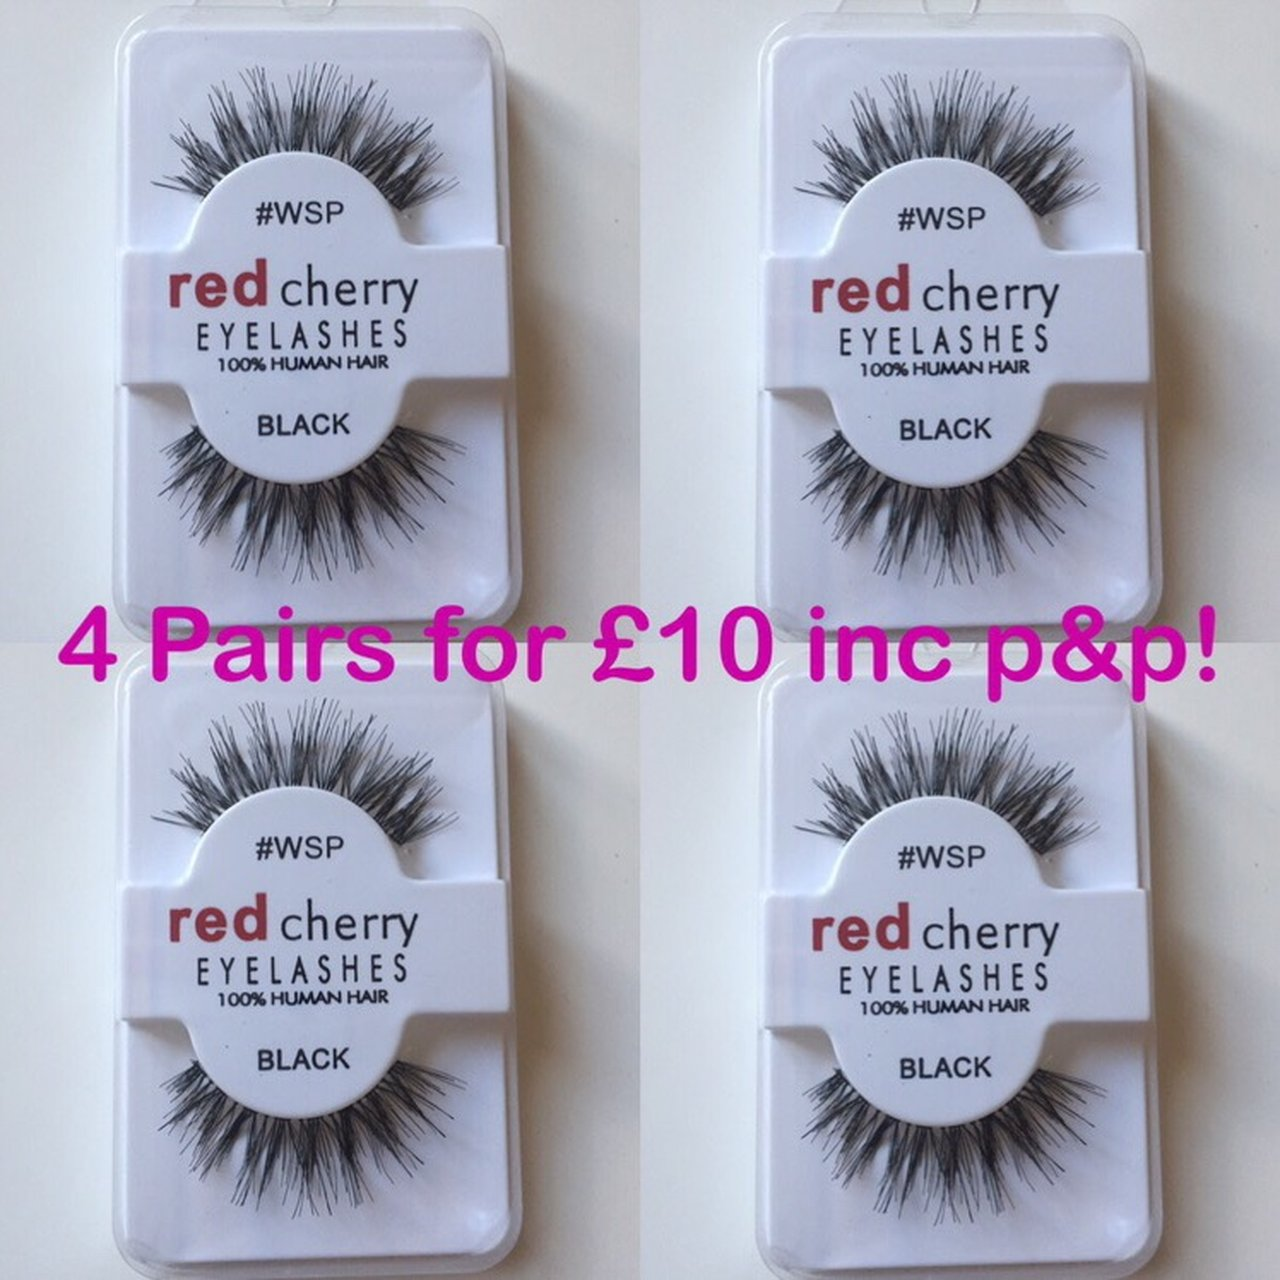 4 Pairs X Red Cherry Wsp False Black Eyelashes 100 Human Depop